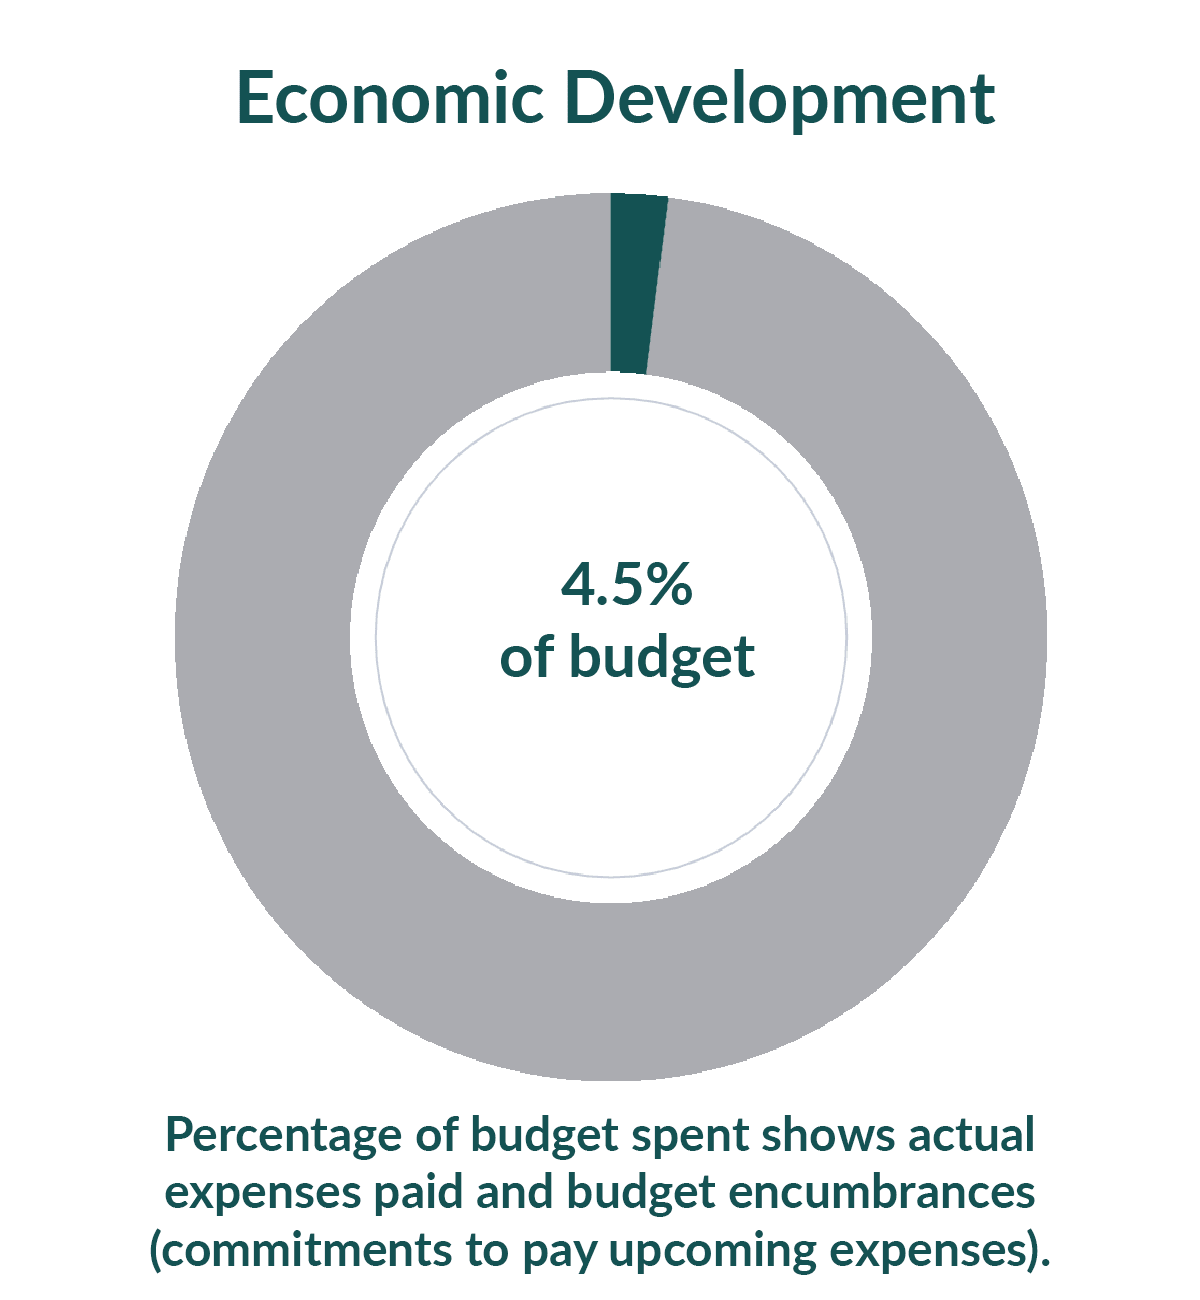 Economic Development: 0.7% of budget used as of July 1, 2020